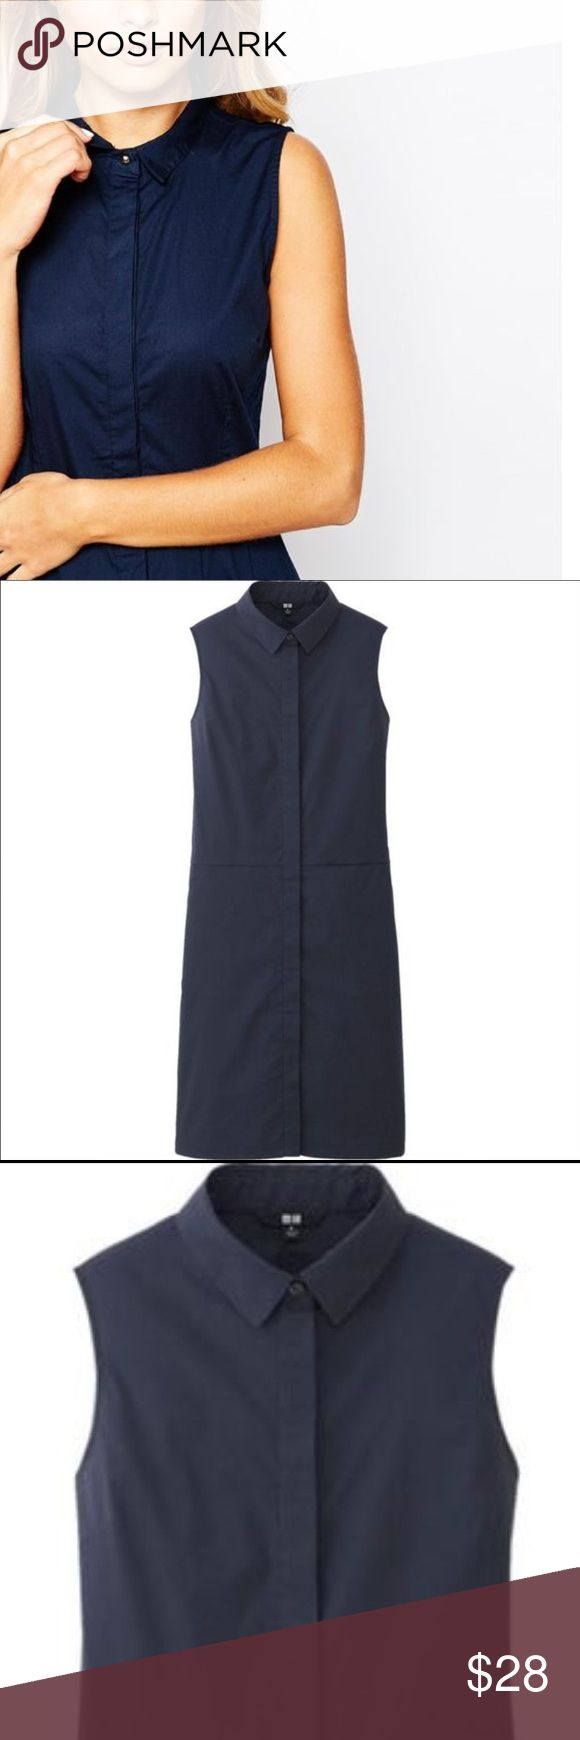 """UNIQLO DRESS This UNIQLO navy shirt dress has a feel of sophistication and playfulness at the same time. 34"""" length. NWOT is an xs but will fit several sizes, 0/2/4 Uniqlo Dresses"""